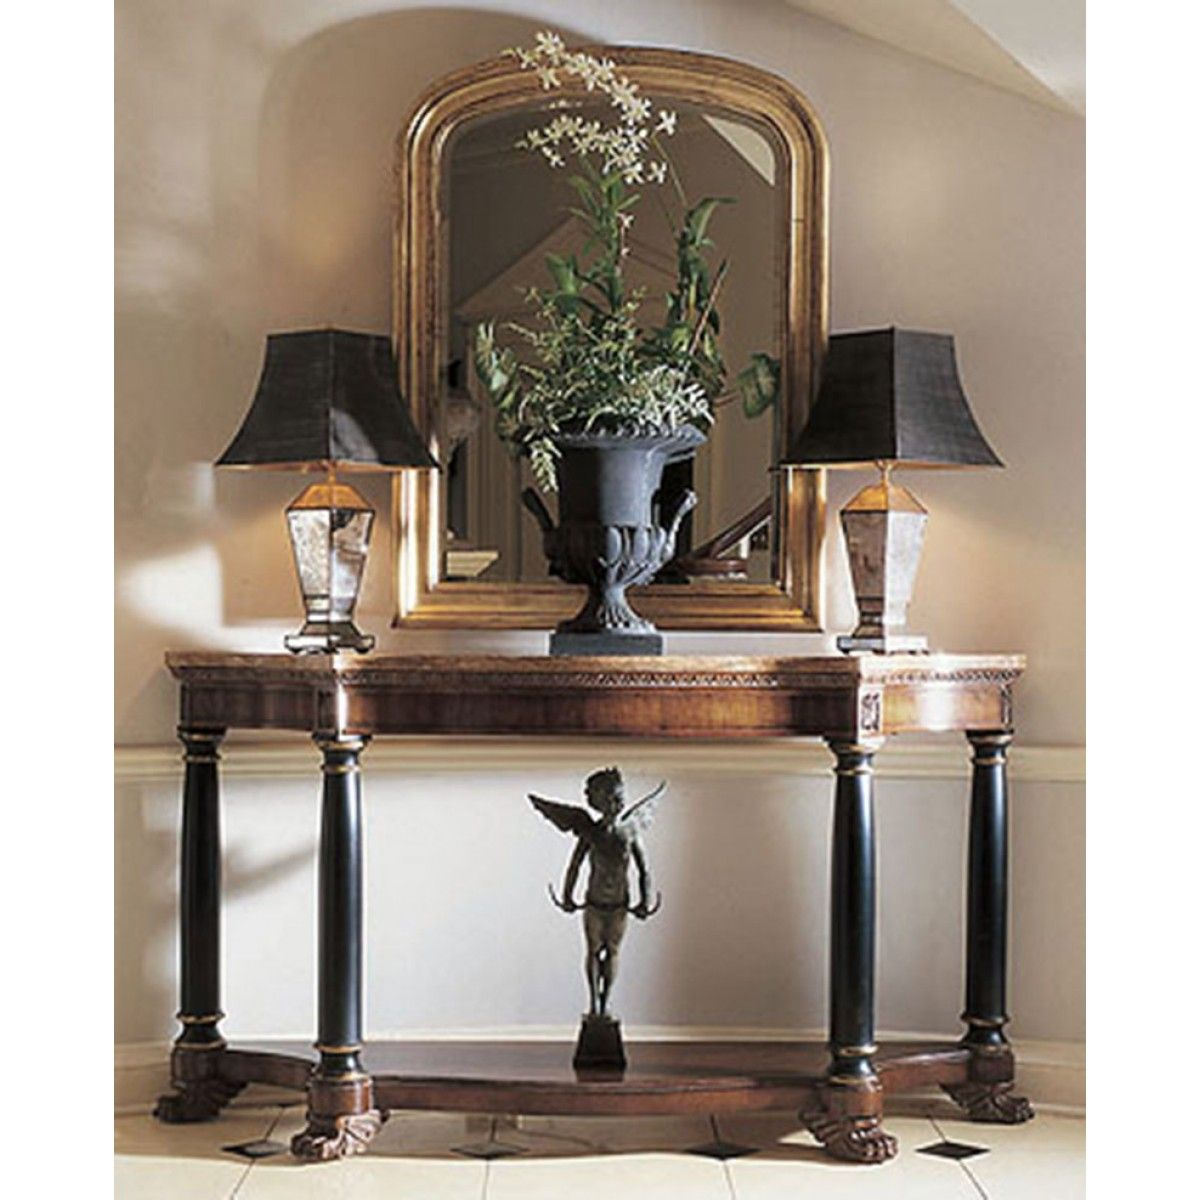 Century EMPIRE CONSOLE WITH MARBLE TOP Entryway decor